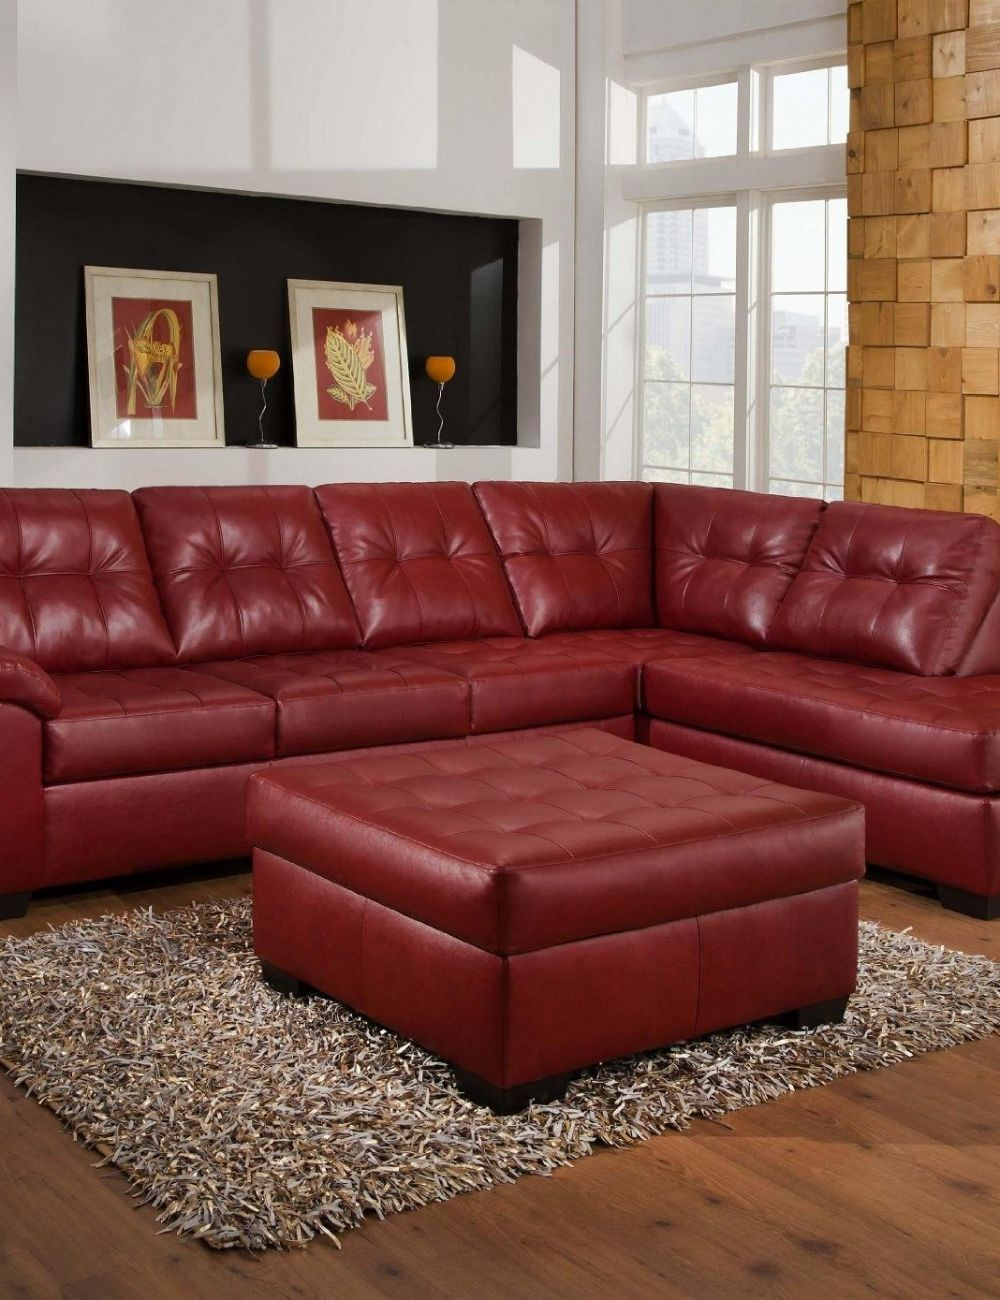 Red leather sectional sofa with ottoman | Sectional sofa ...